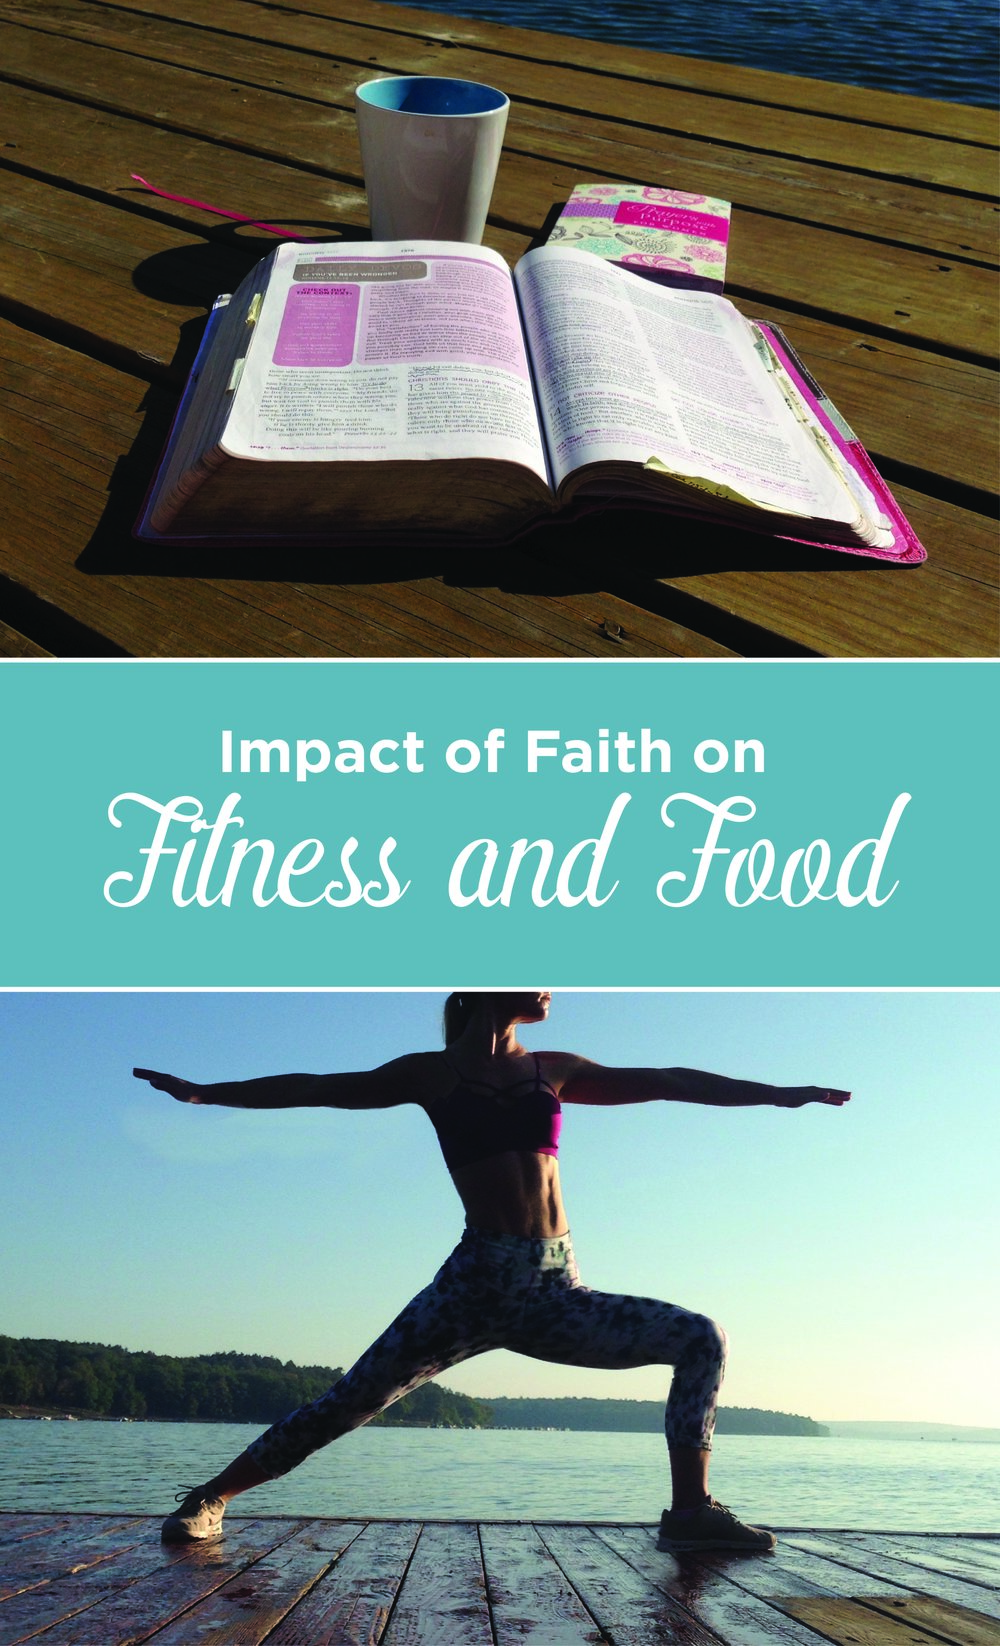 Faith impacts how we treat our body. That means working out and eating well are worship to the Lord. Use your body well and challenge it.